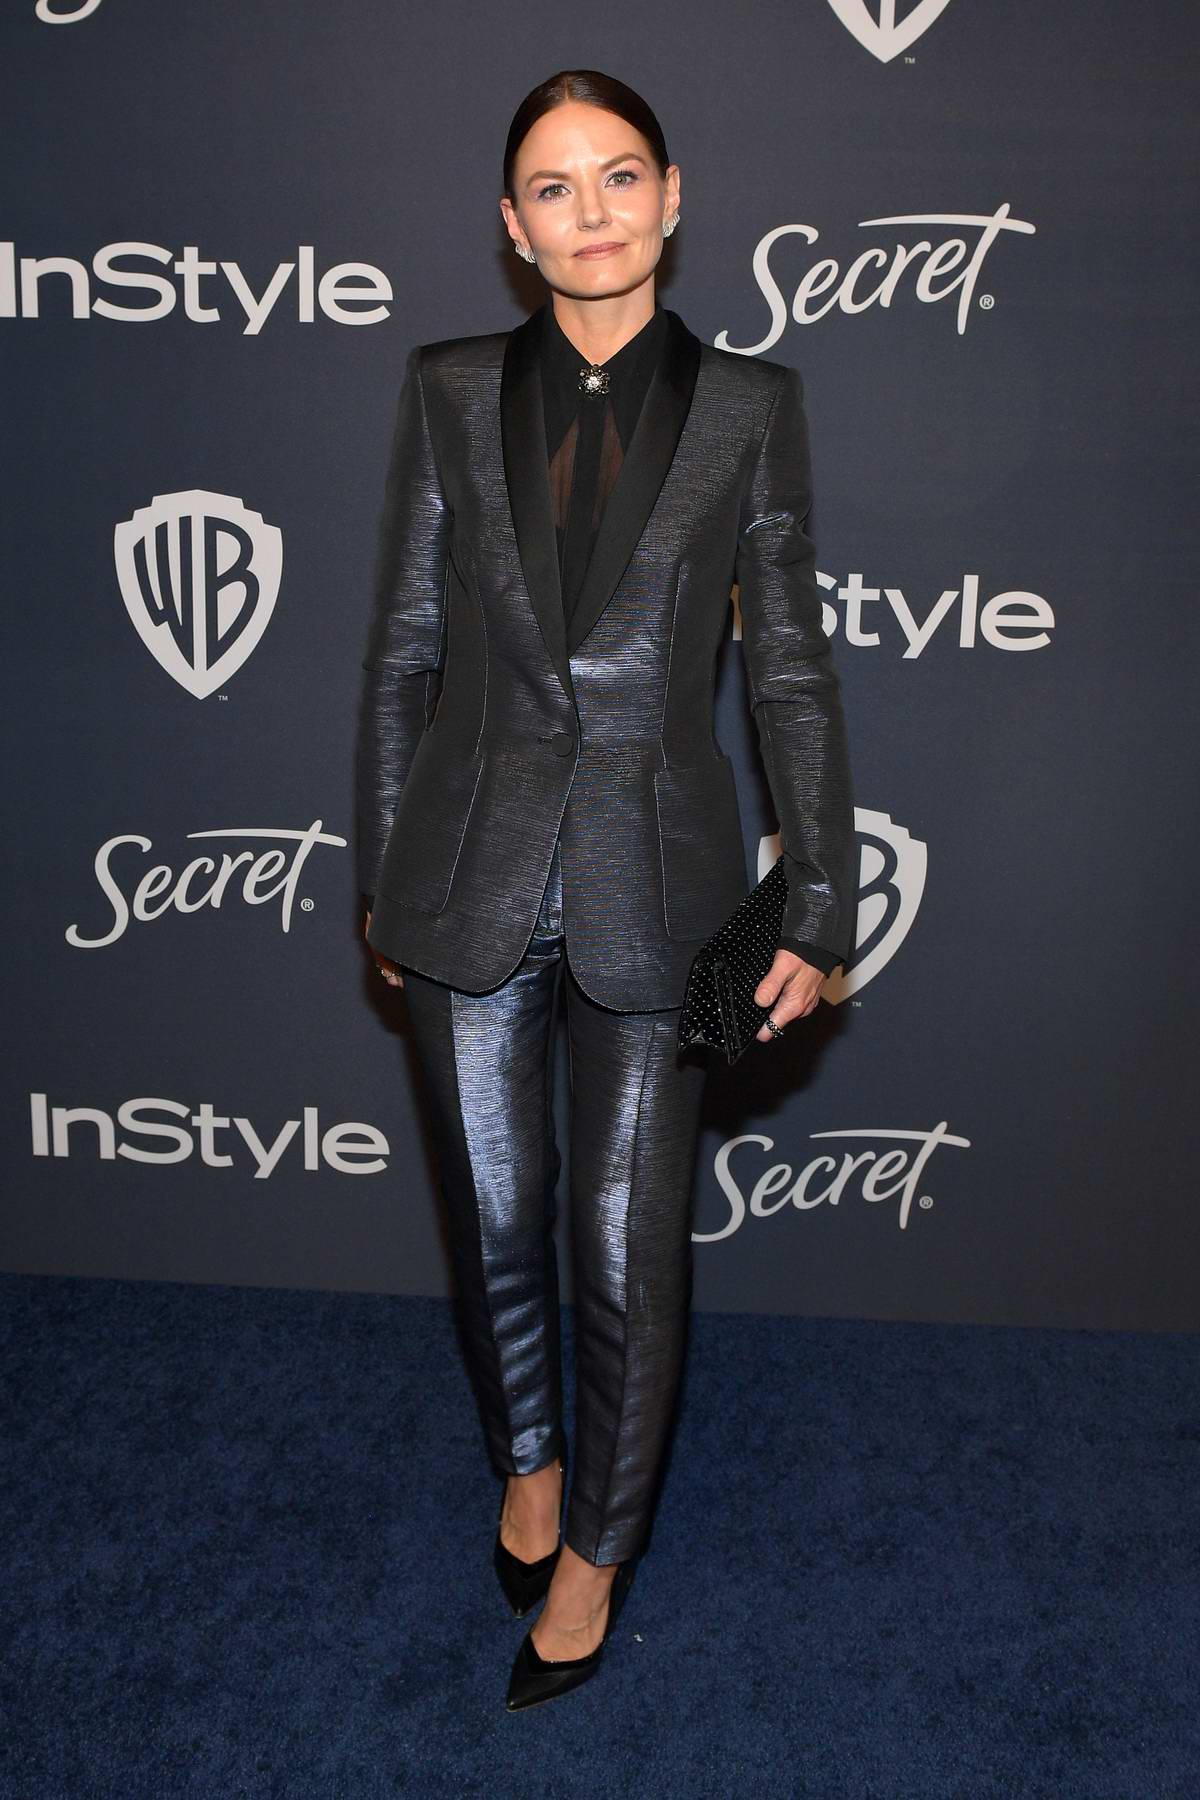 Jennifer Morrison attends the 21st annual Warner Bros and InStyle Golden Globe After-Party in Beverly Hills, California